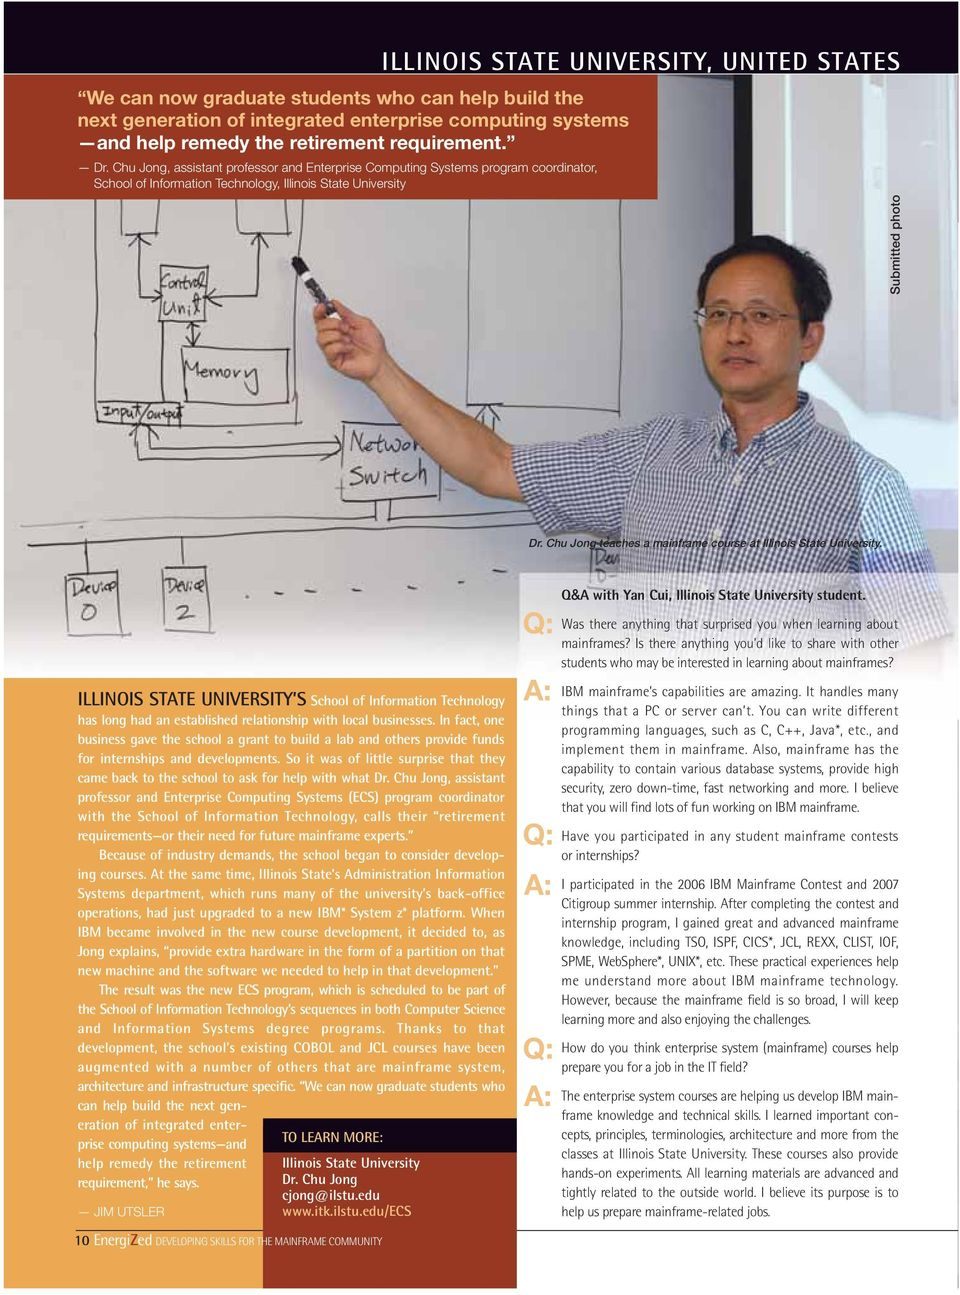 Chu Jong teaches a mainframe course at Illinois State University. ILLINOIS STATE UNIVERSITY S School of Information Technology has long had an established relationship with local businesses.